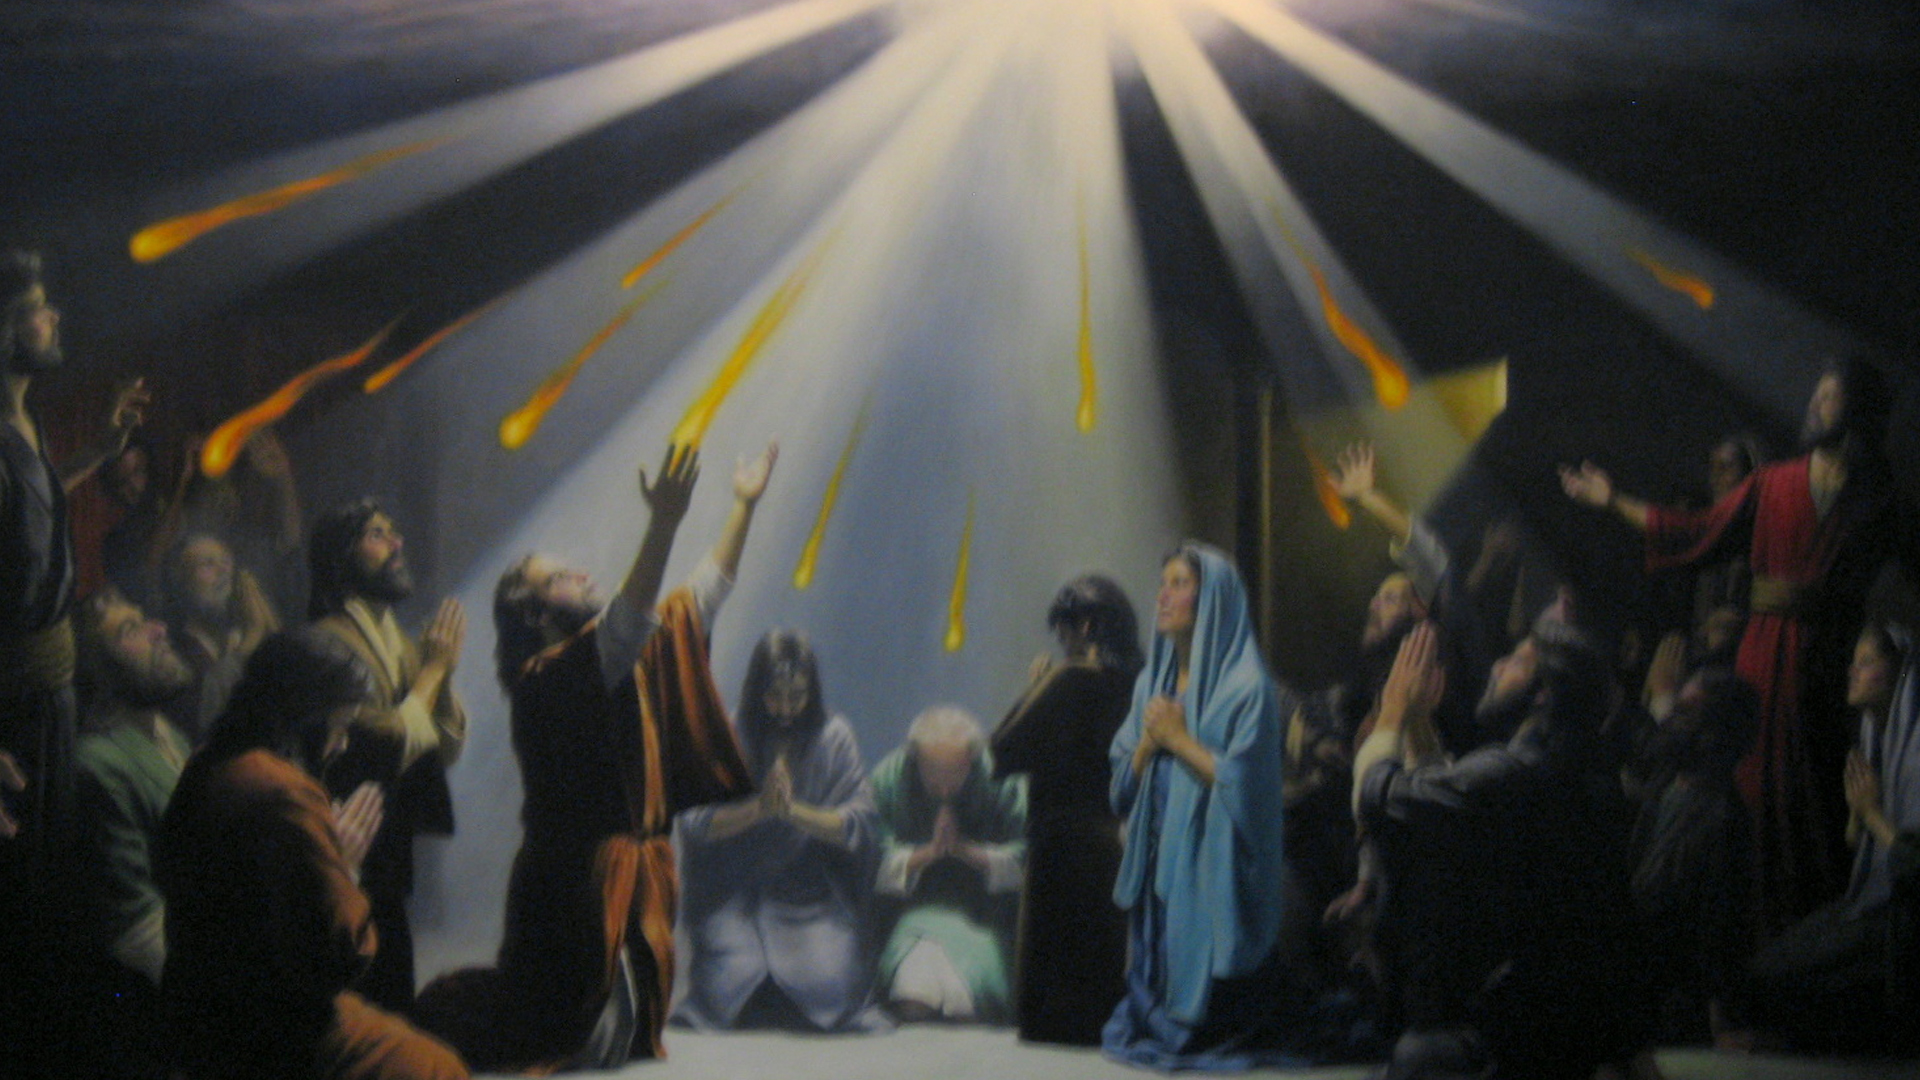 June 9 2019) Sermon for The Day of Pentecost -Acts 2:1-21; Psalm 143;  Genesis 11:1-9; John 14:23-31 You Have Spoken In Tongues — Grace  Evangelical Lutheran Church